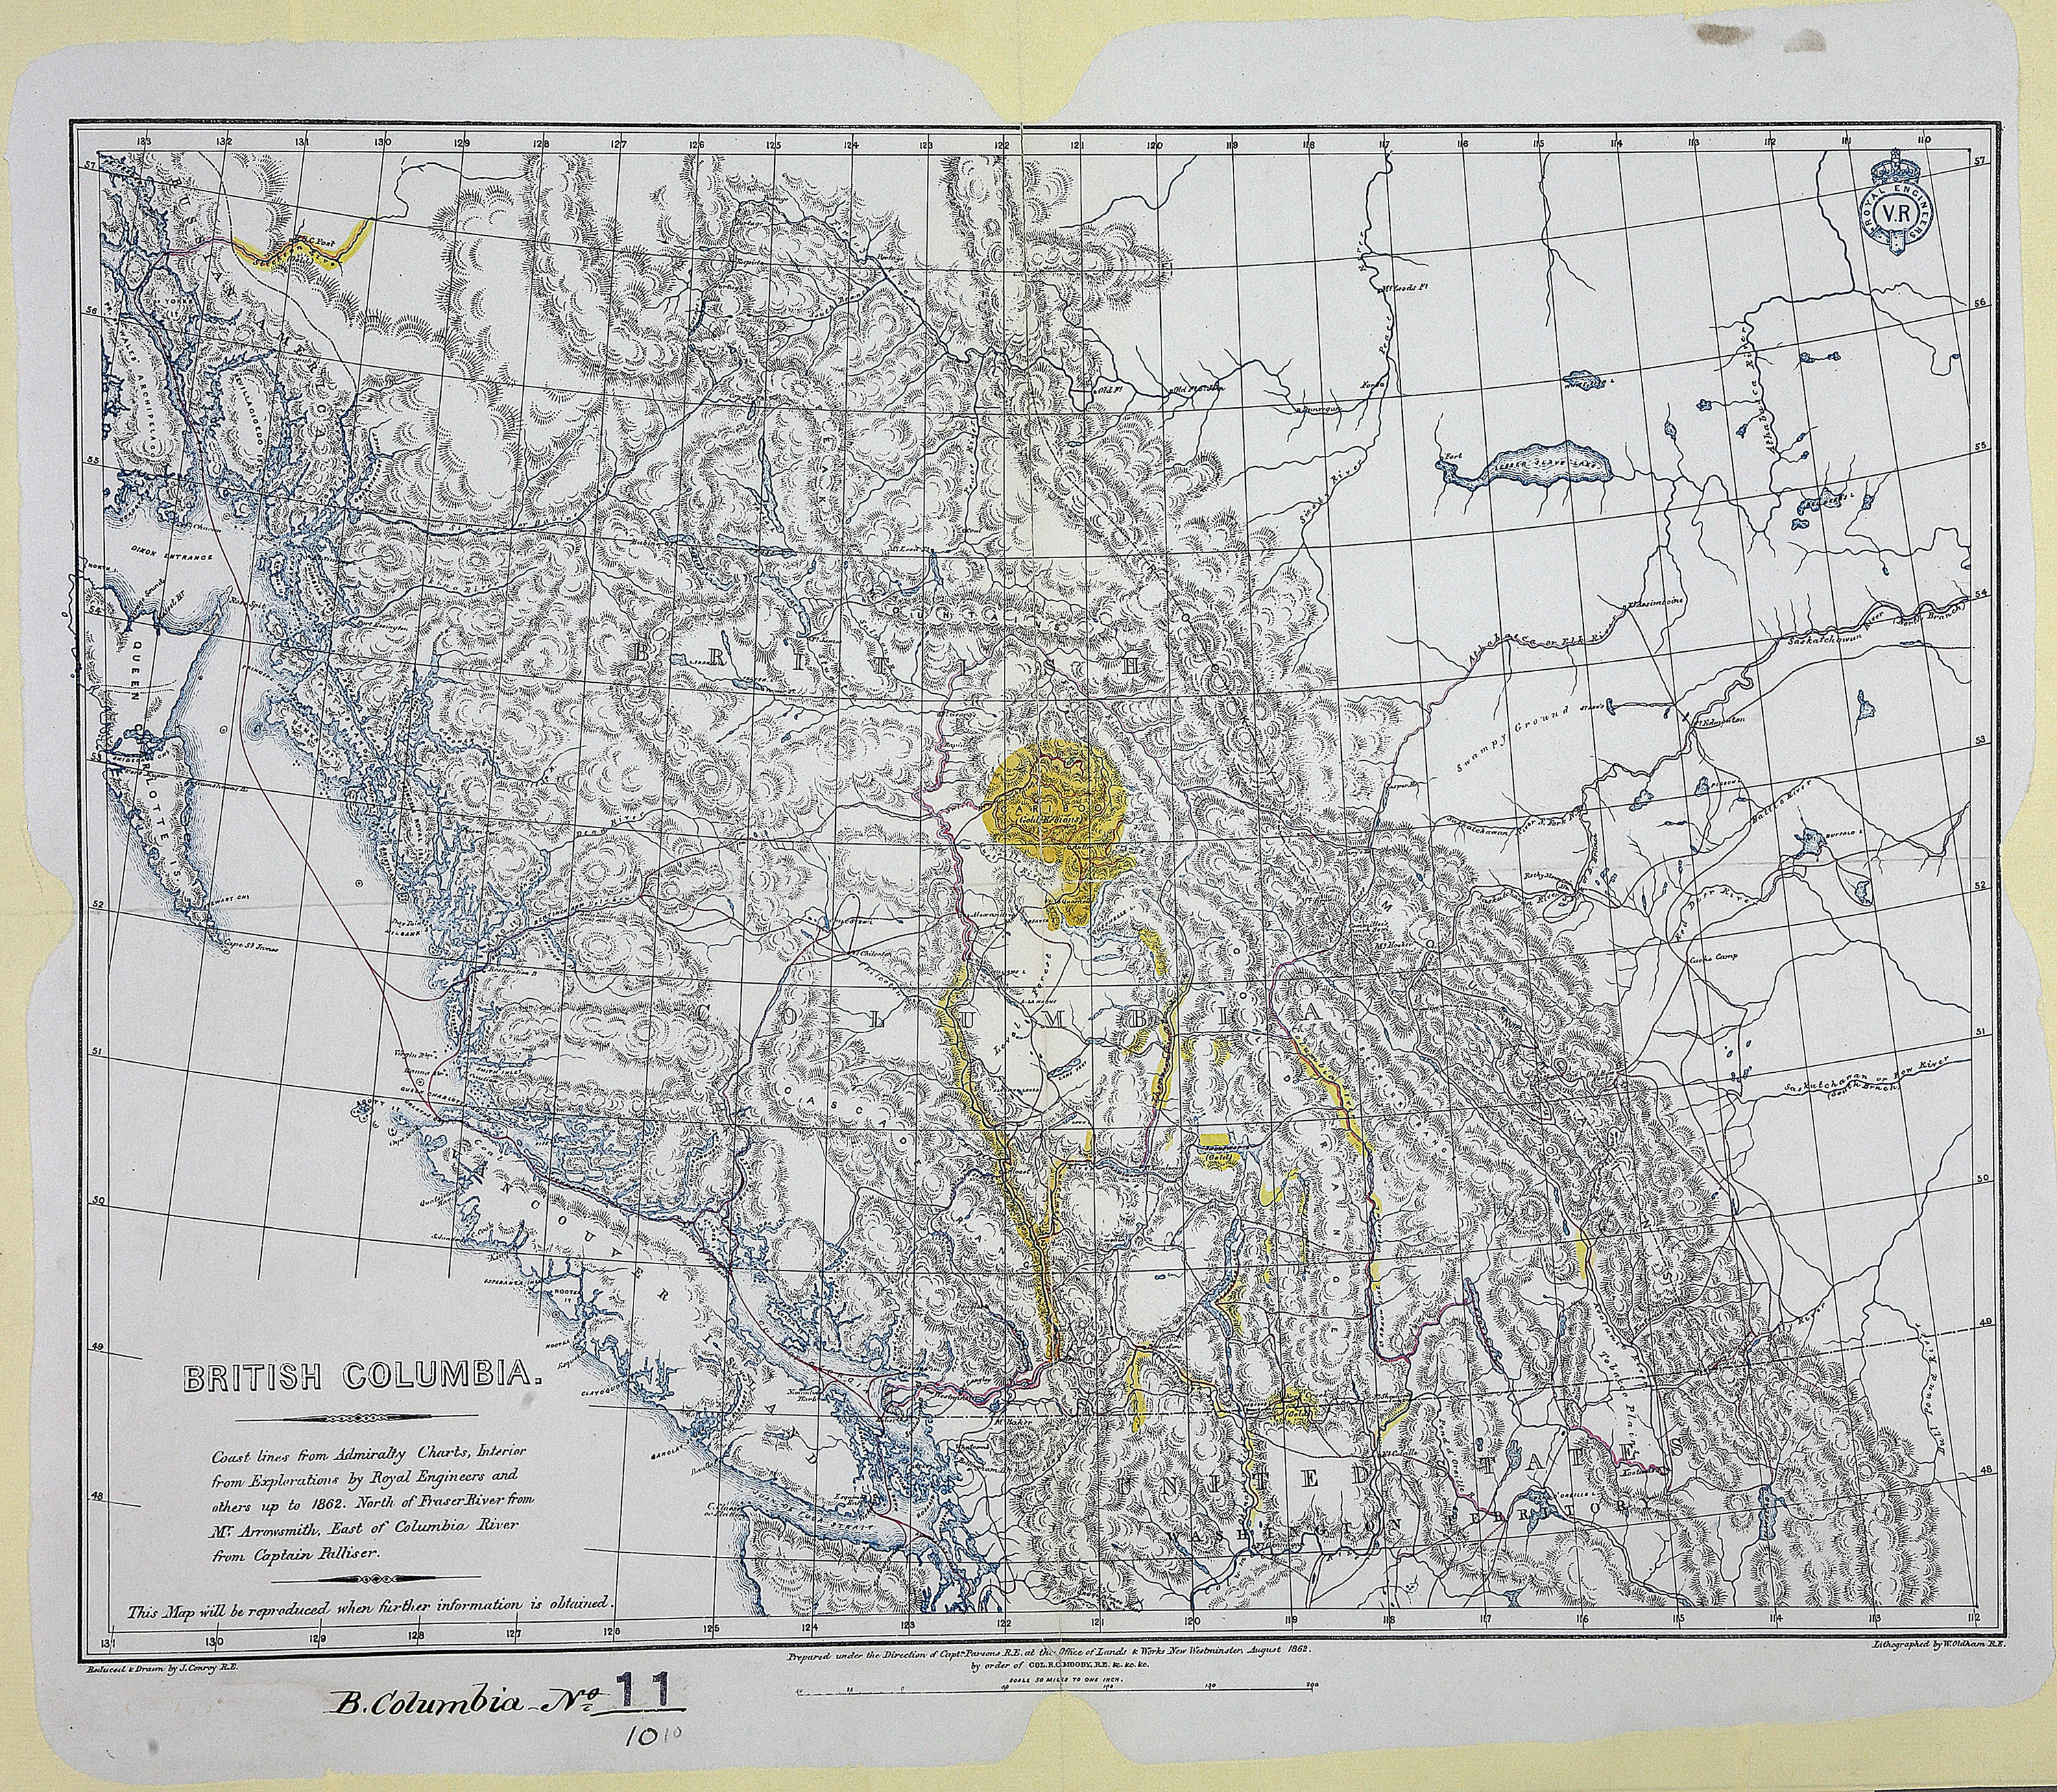 British Columbia, 1862. Coast lines from Admiralty charts, interior from explorations by Royal Engineers and others up to 1862. North of Fraser River from Mr. Arrowsmith, East of Columbia River from Captain Palliser.